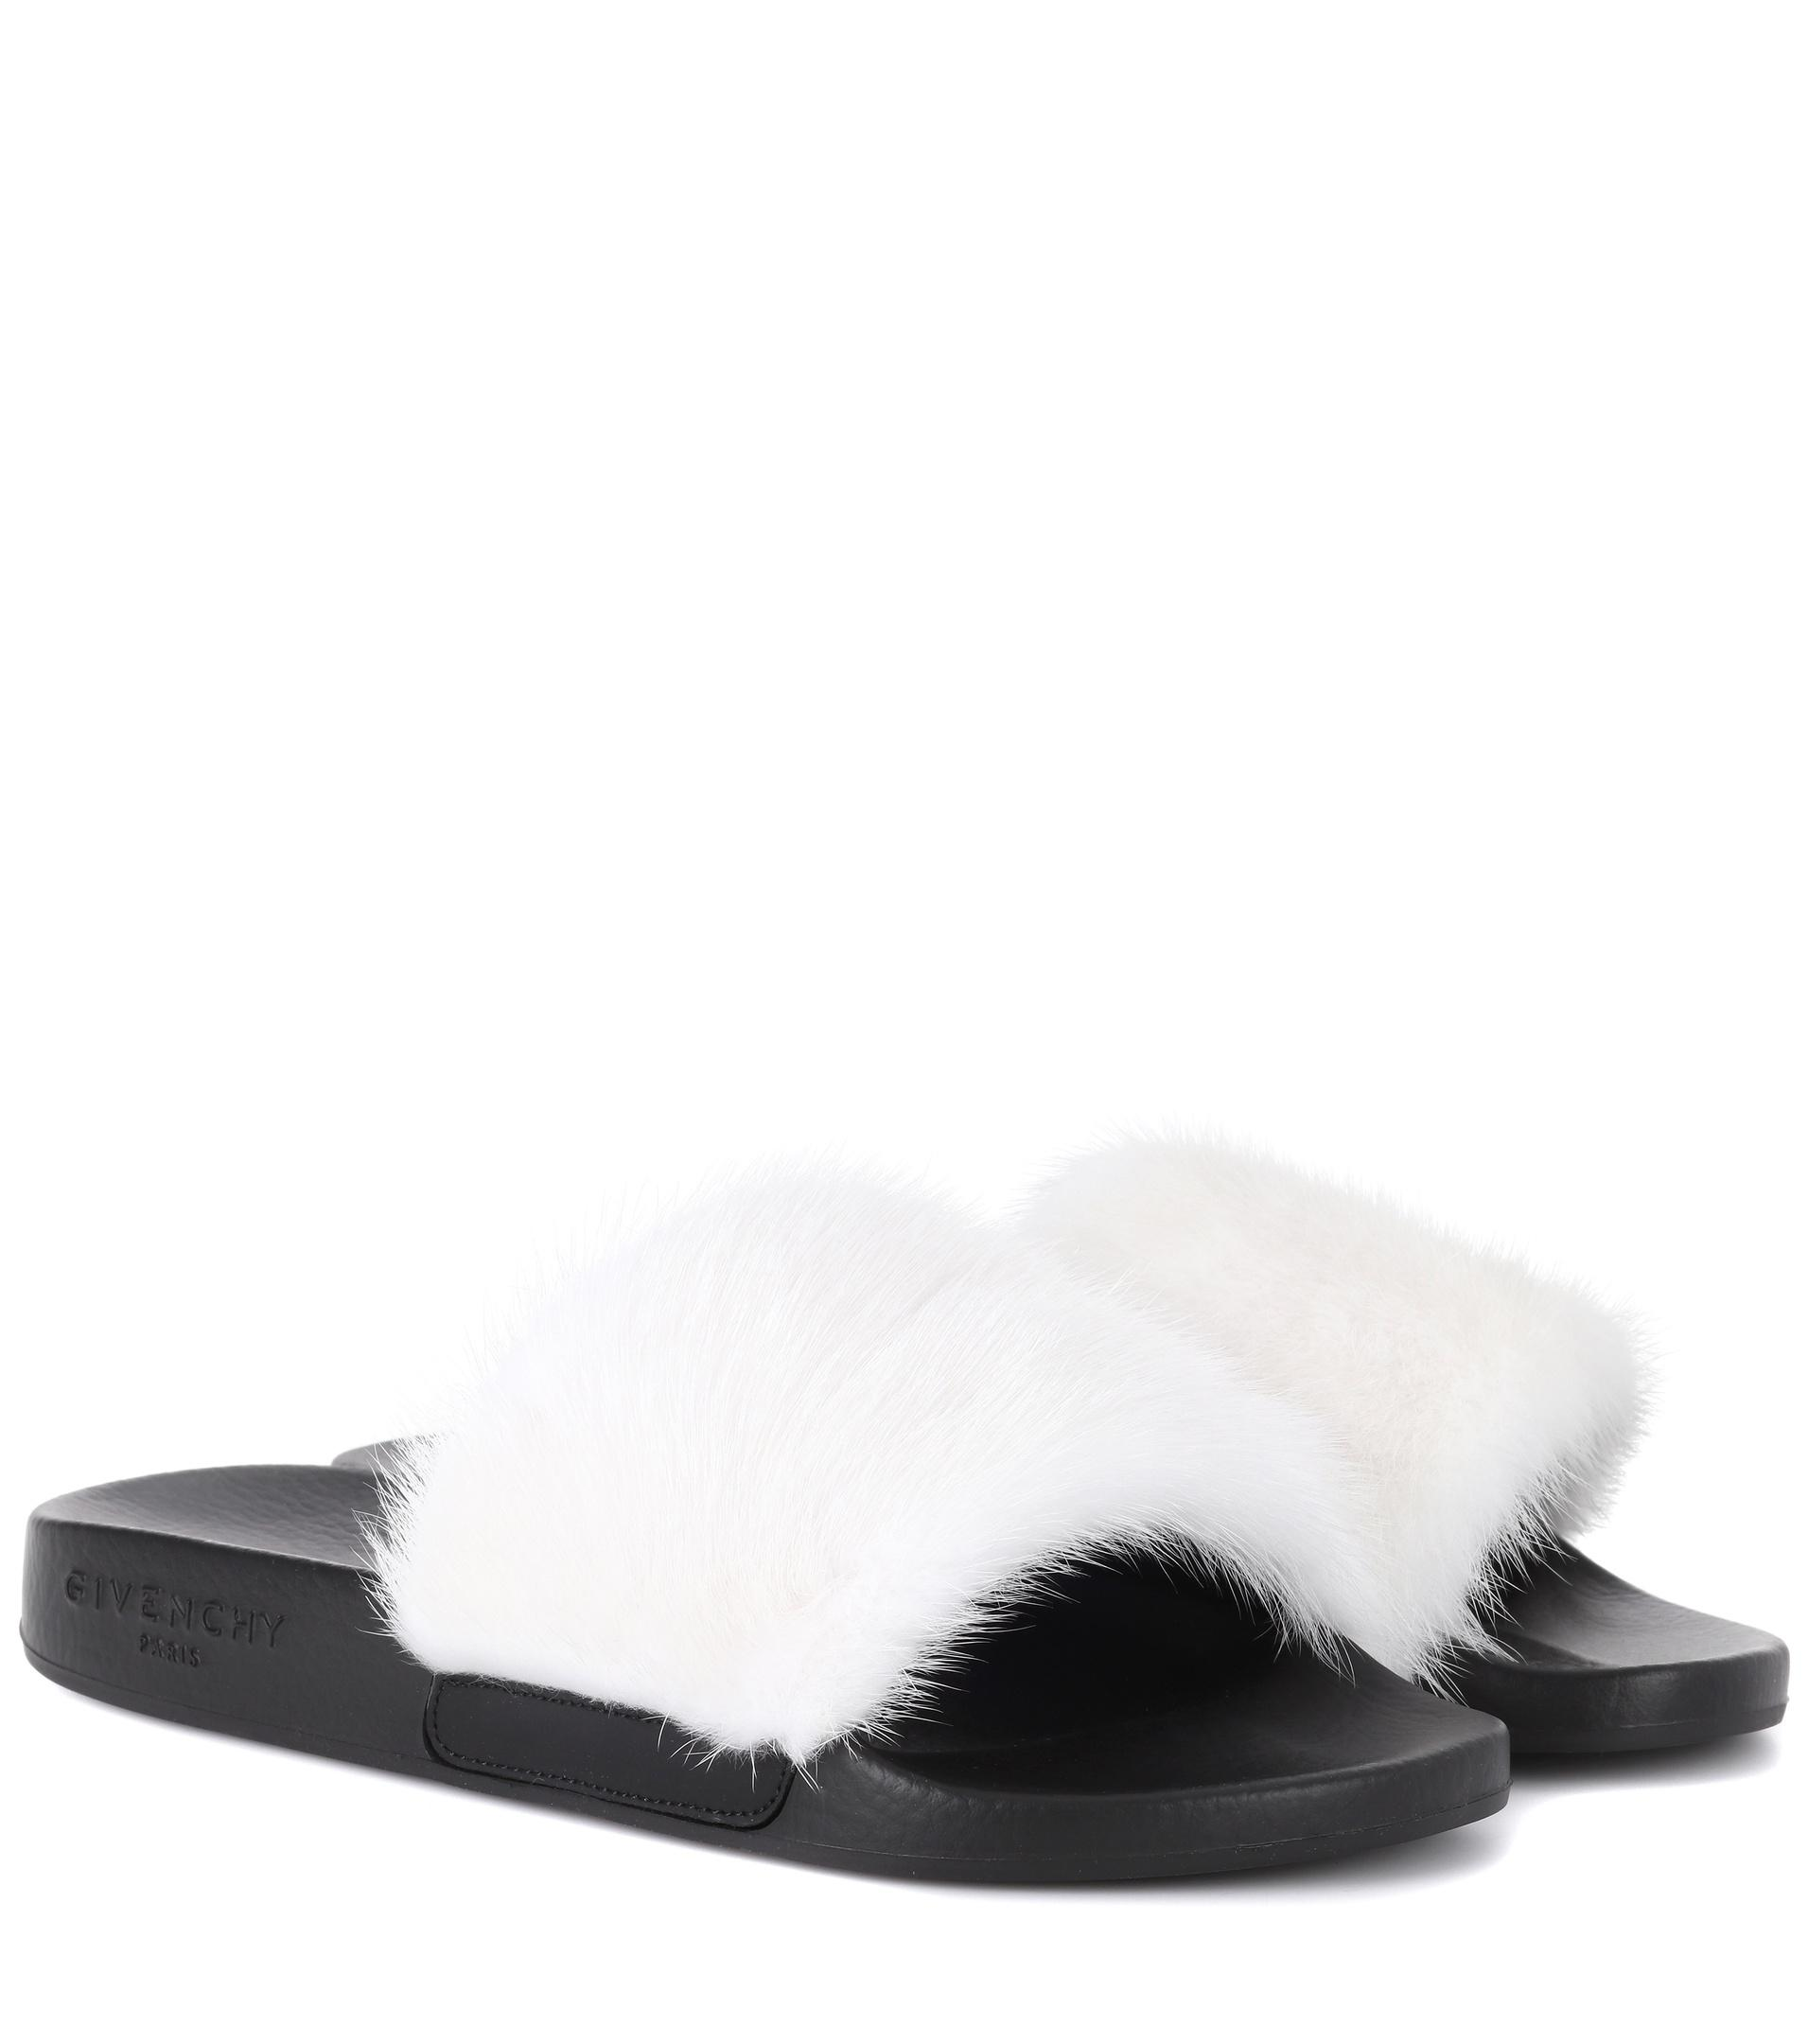 66544e02901b Givenchy Mink Fur Slides in White - Save 26% - Lyst